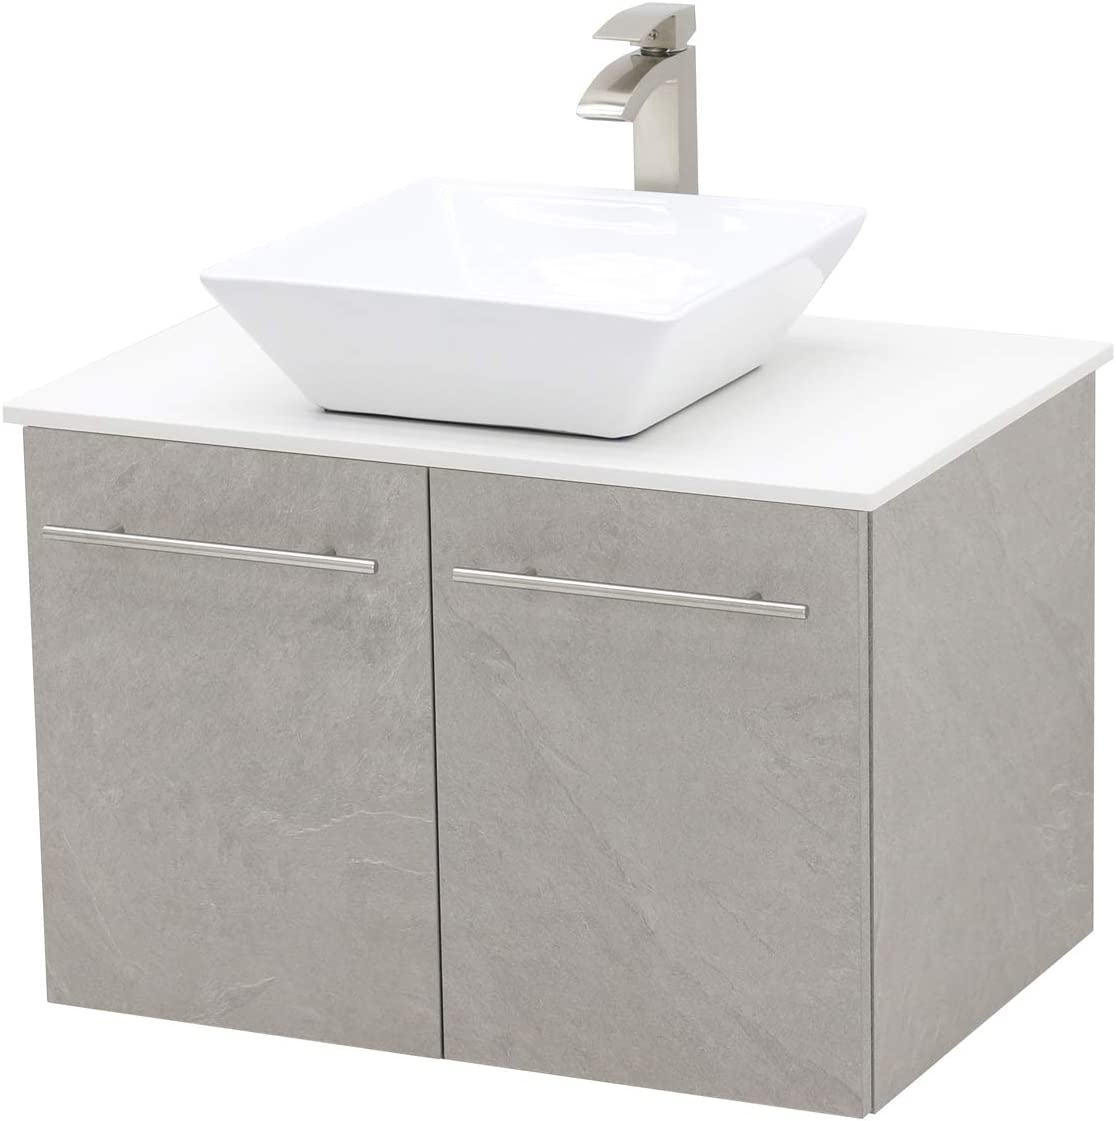 WindBay Wall Mount Floating Bathroom Vanity Sink Set. Light Slate Grey Vanity